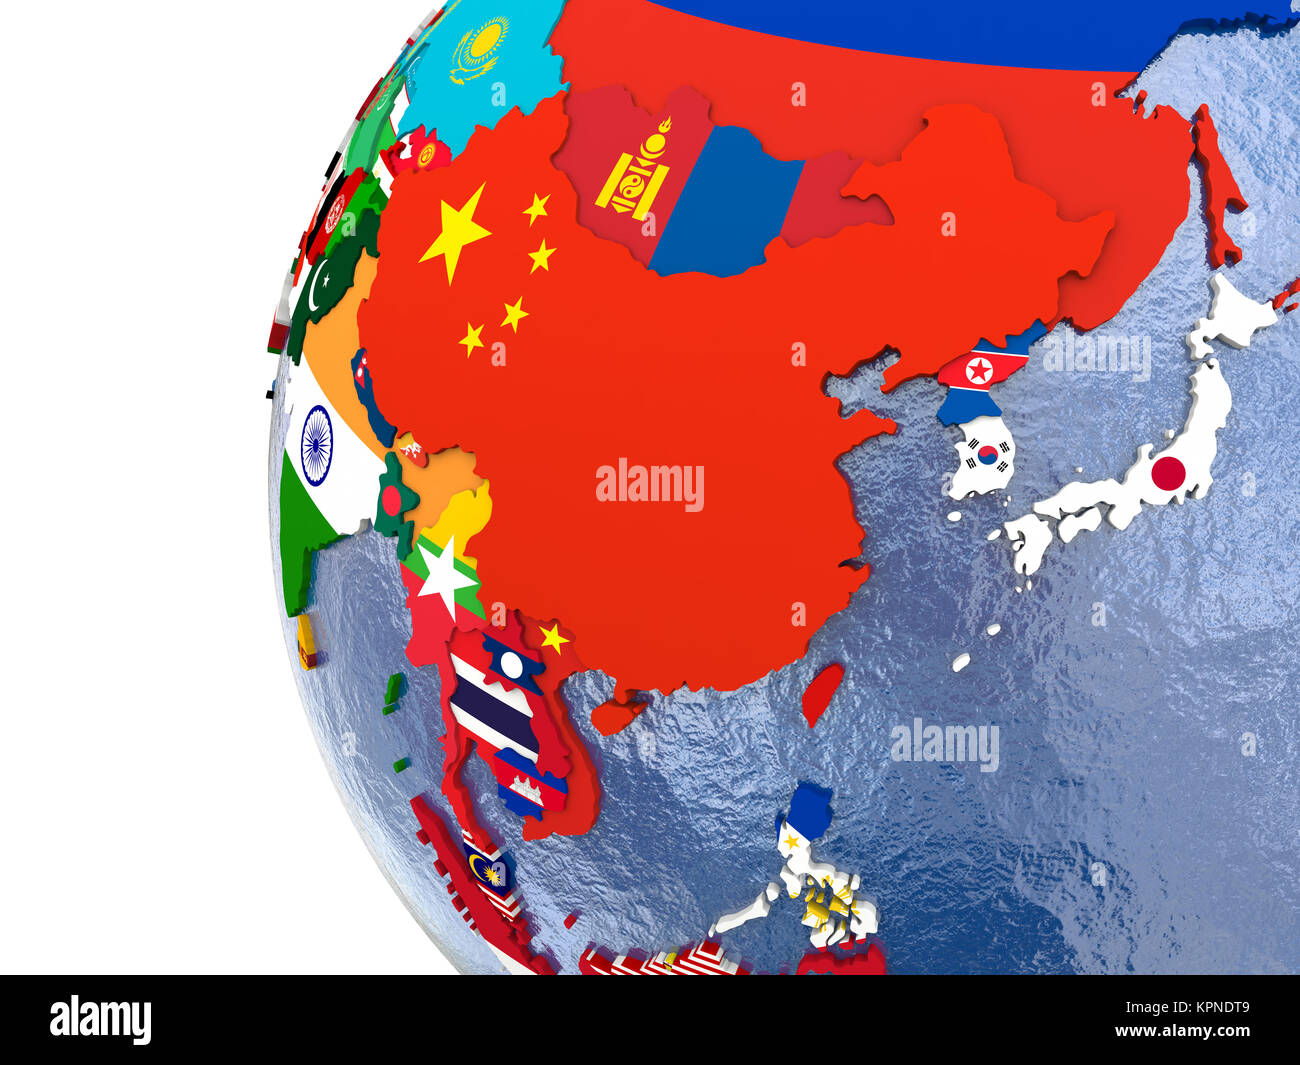 East Asia Map Stock Photos & East Asia Map Stock Images - Alamy